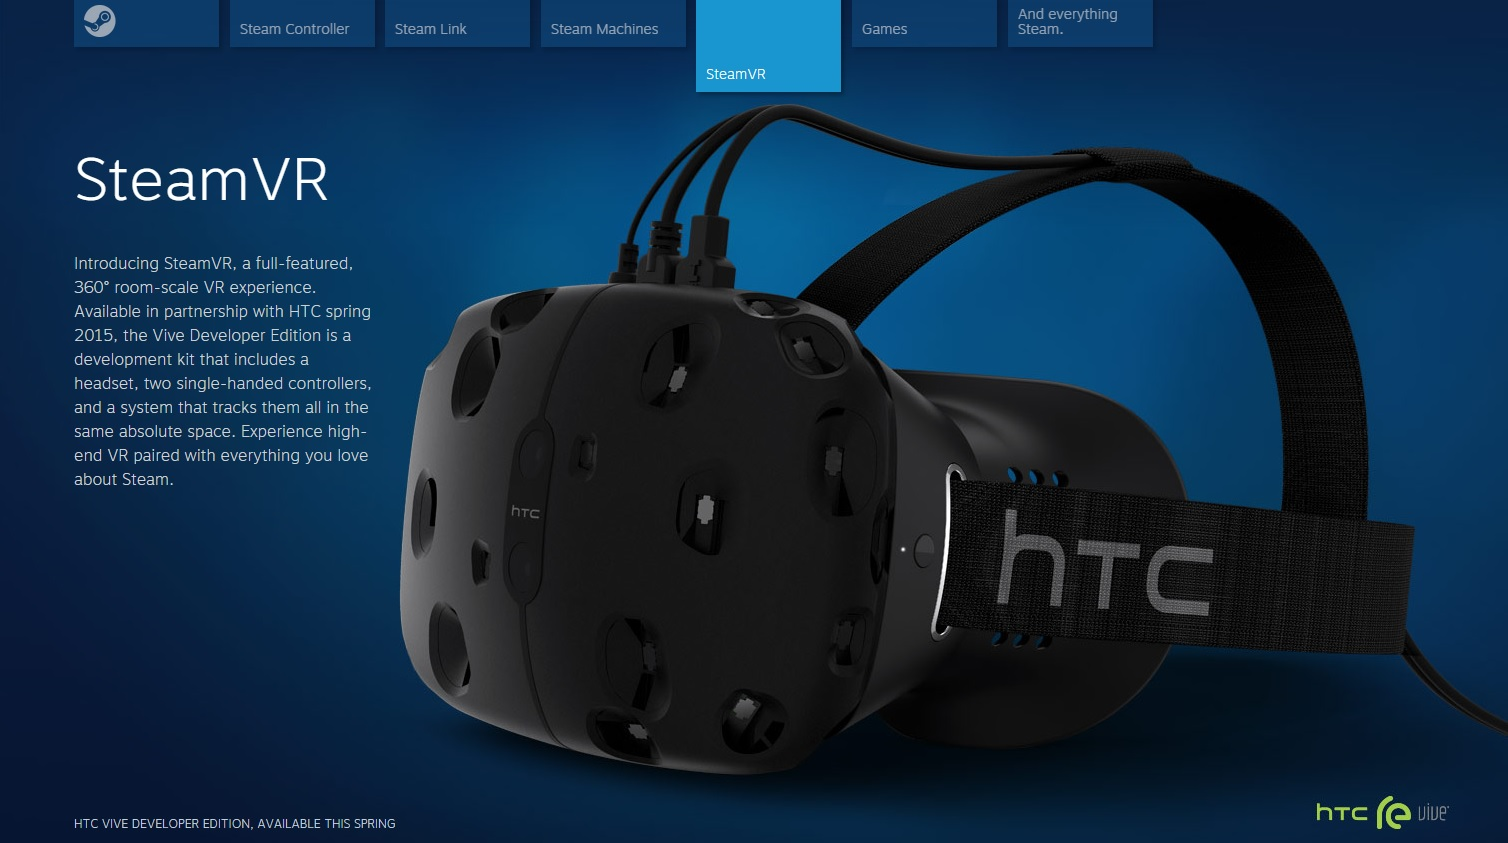 Ps4 Project Morpheus Vs Oculus Rift Vs Htc Vive Vs Razer